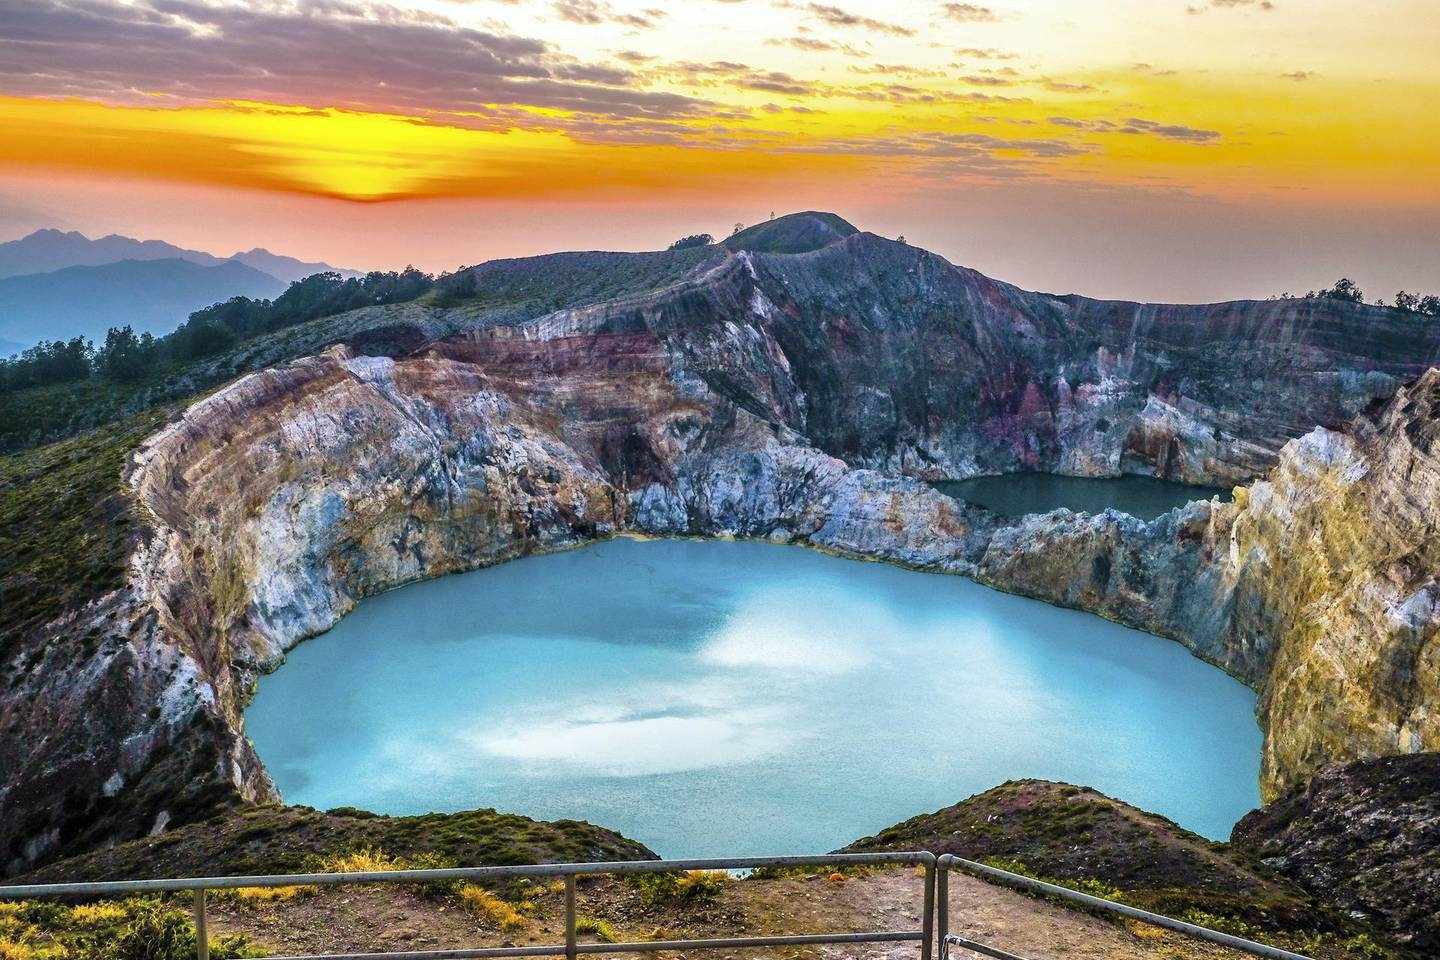 A volcano located on Flores island in Indonesia that has with  three crater lakes that changes colours throughout the year.